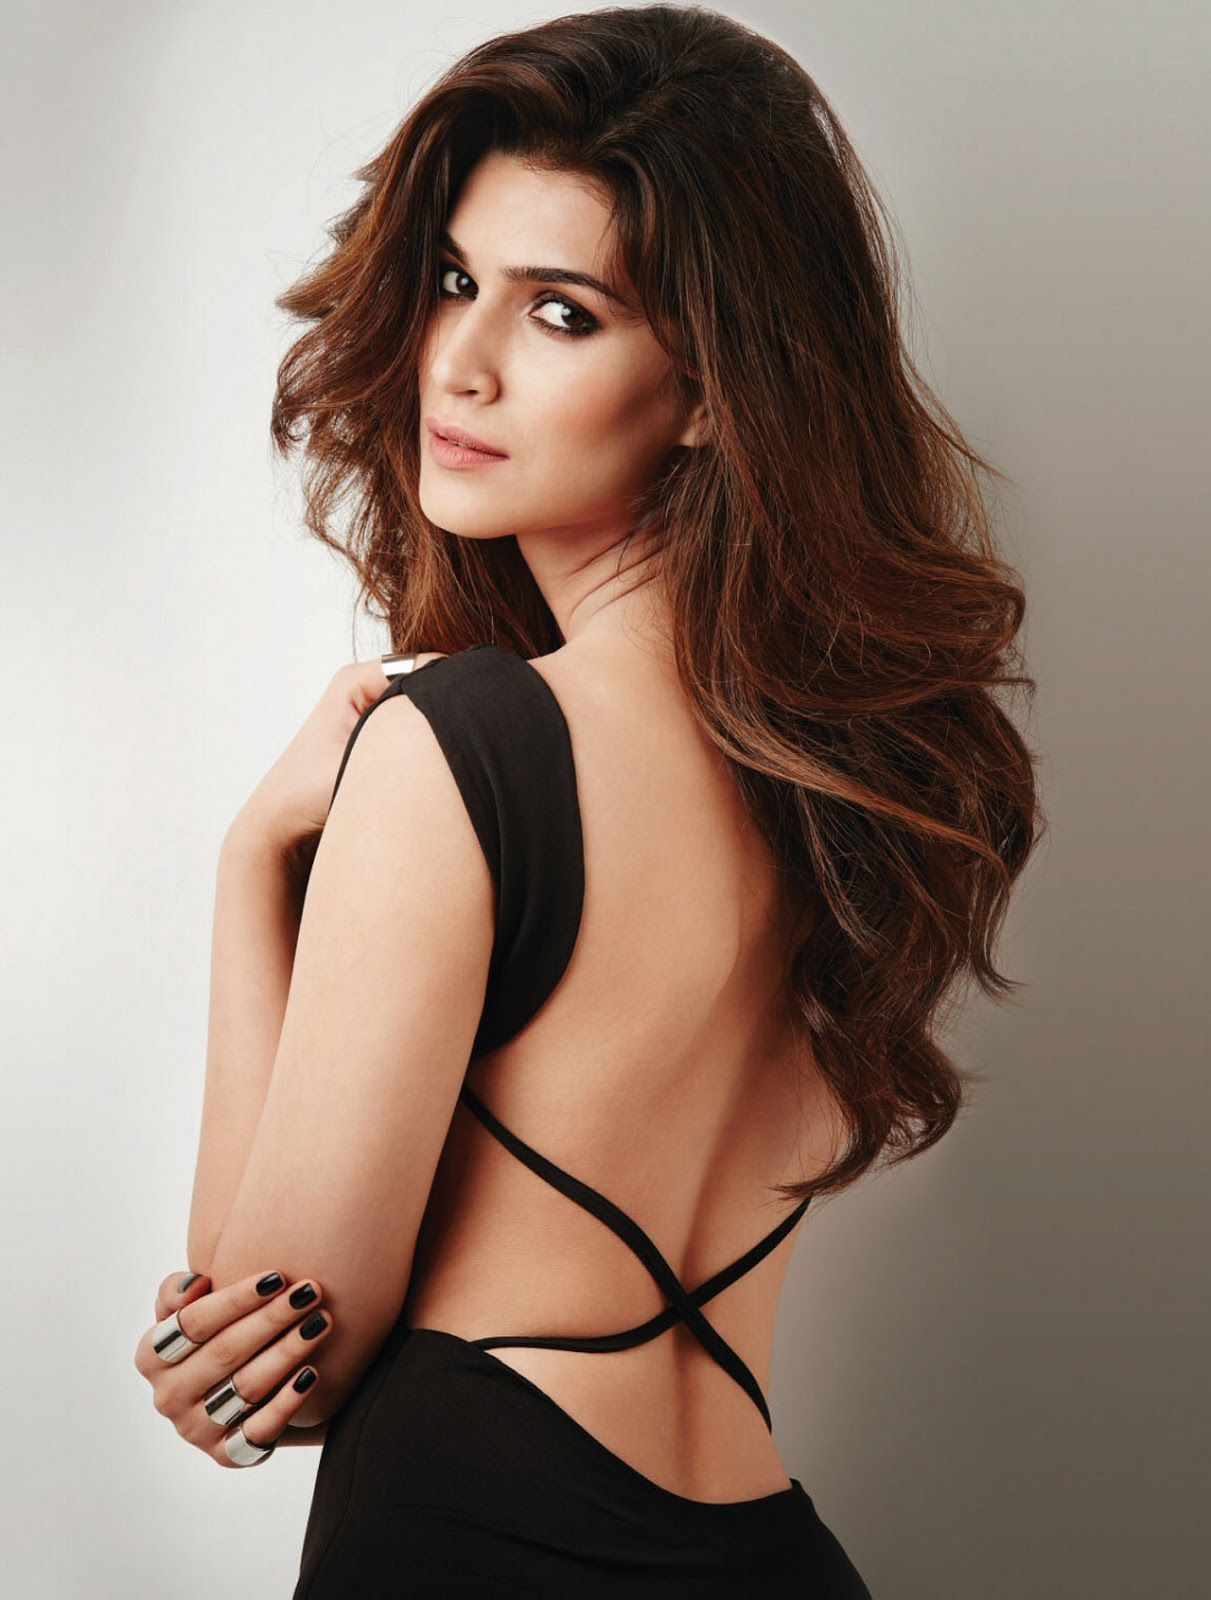 Kriti Sanons Photoshoot For Femina India Bollywood Fashion Style Beauty Hot Sexy